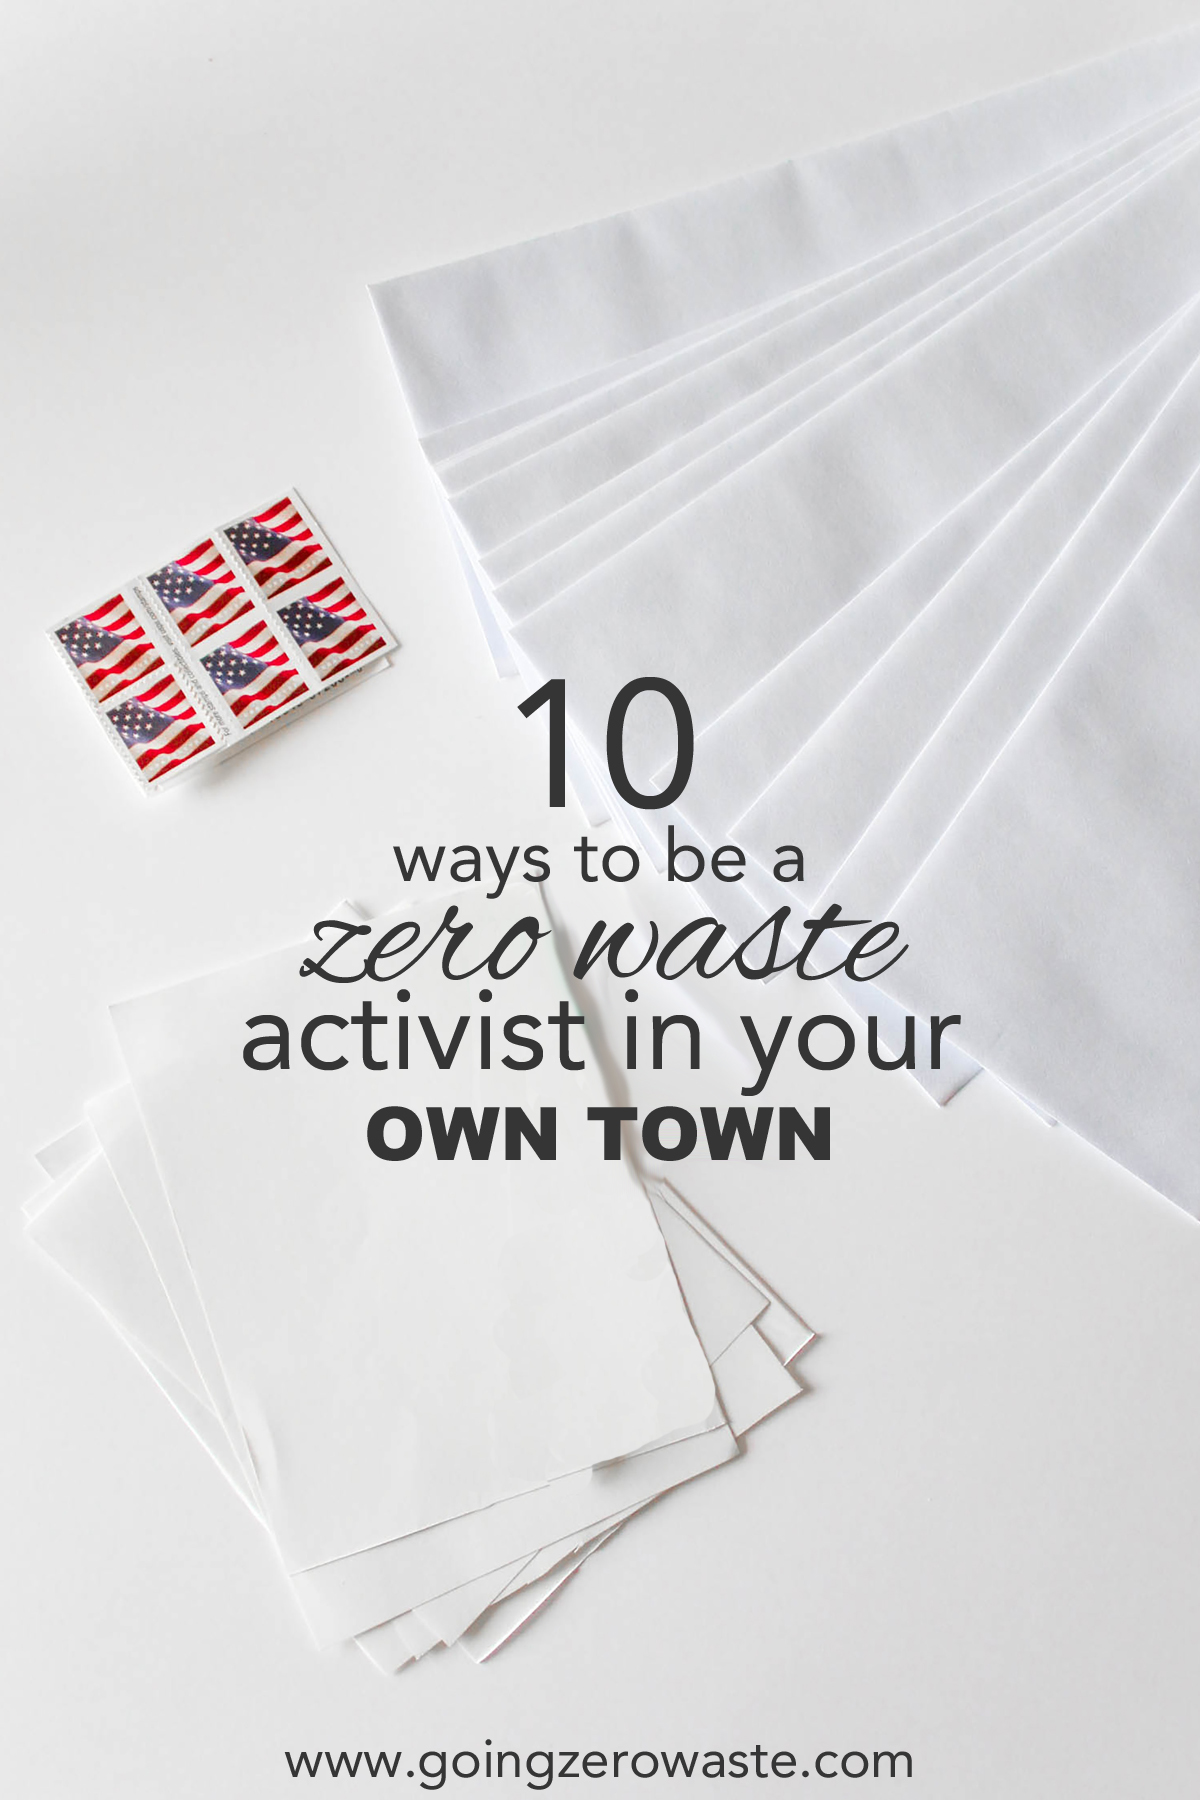 10 Ways to Be a Zero Waste Activist in Your Town from www.goingzerowaste.com #zerowaste #community